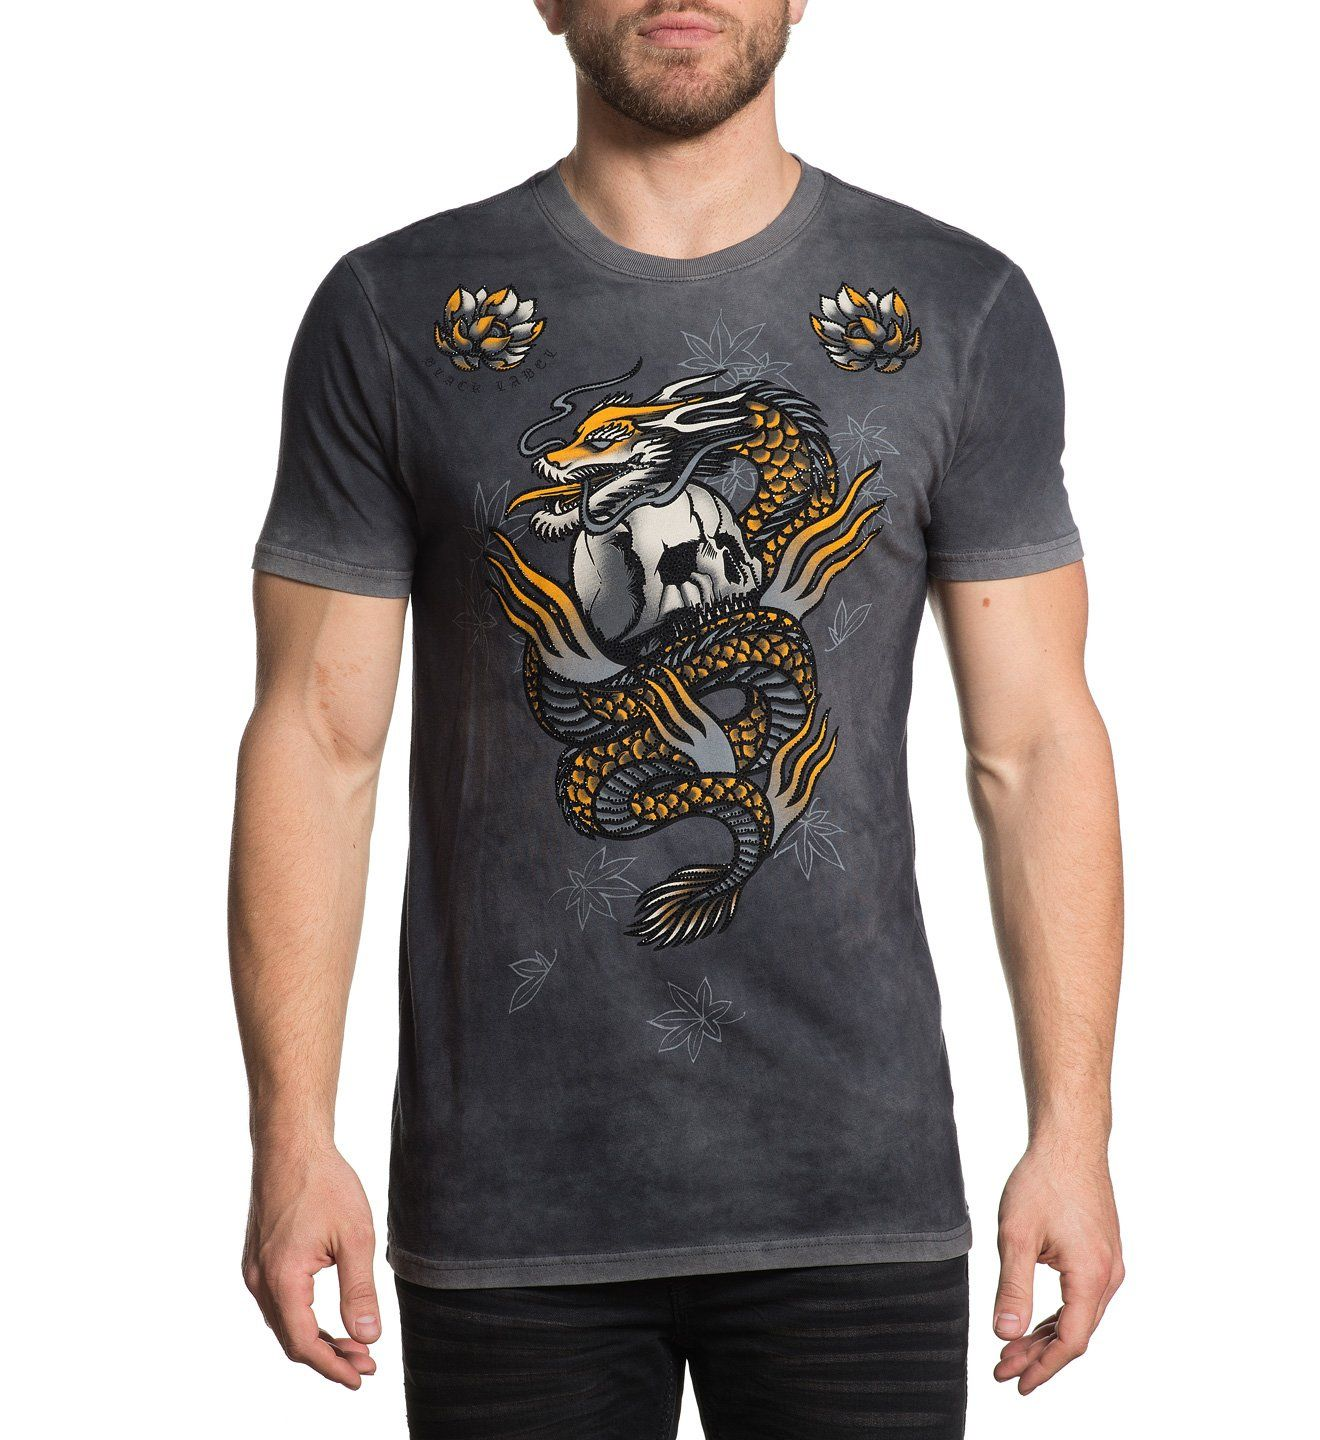 Mens Short Sleeve Tees - Dragon Fire